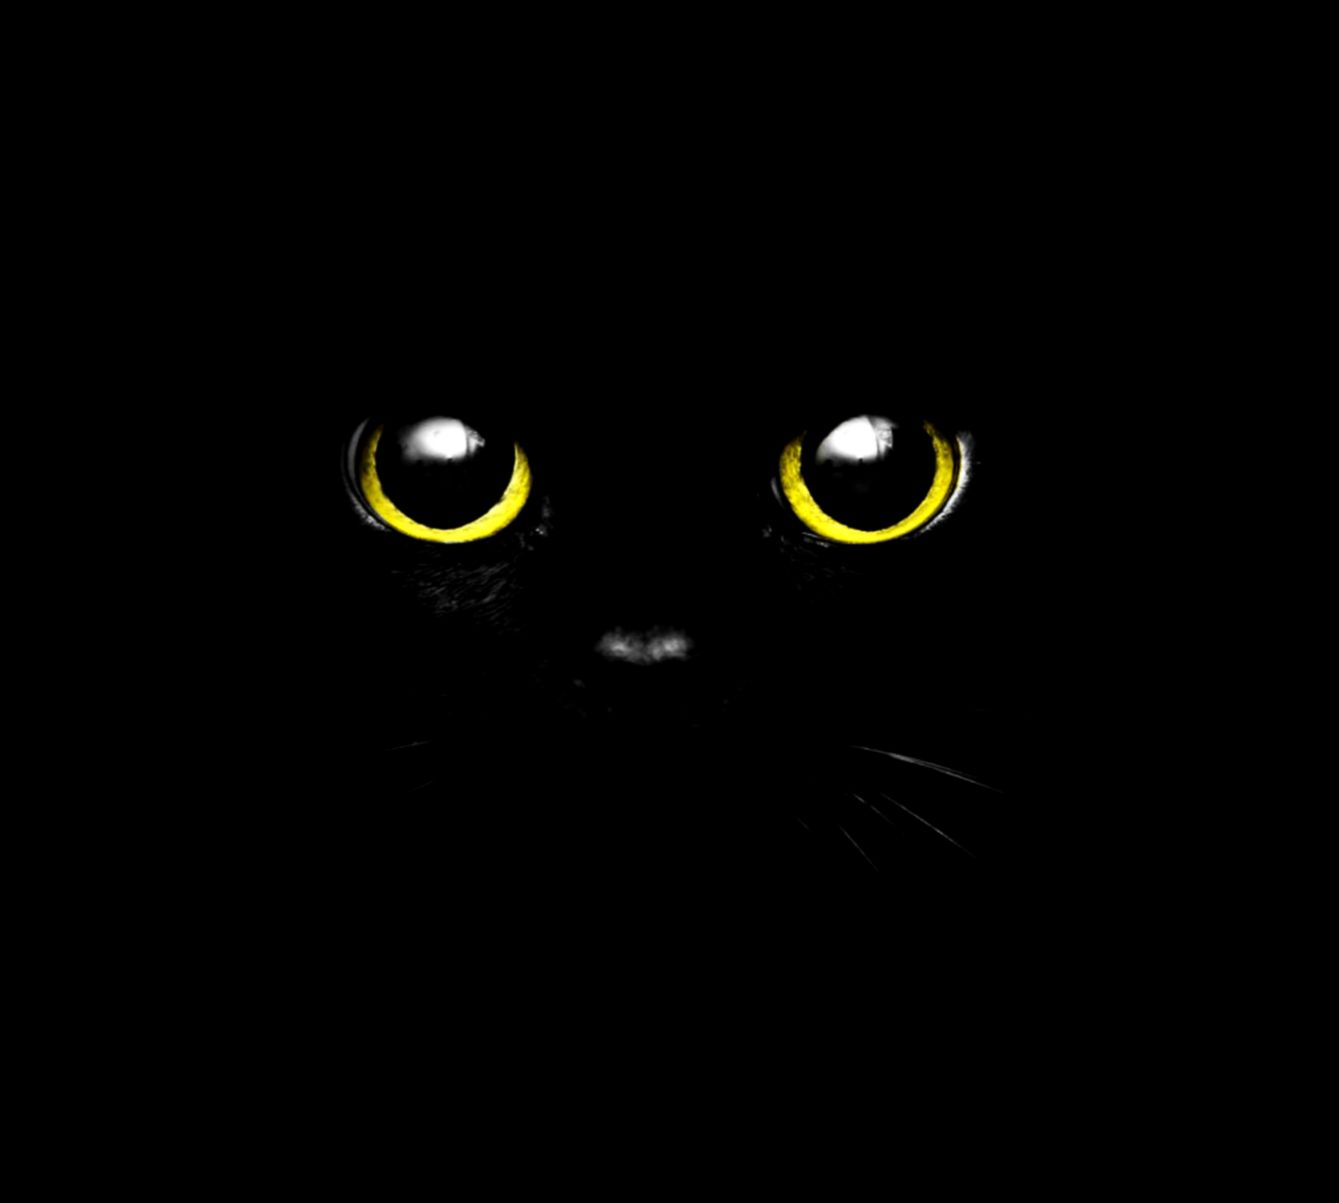 Black Cat Eyes Wallpaper Views Wallpapers